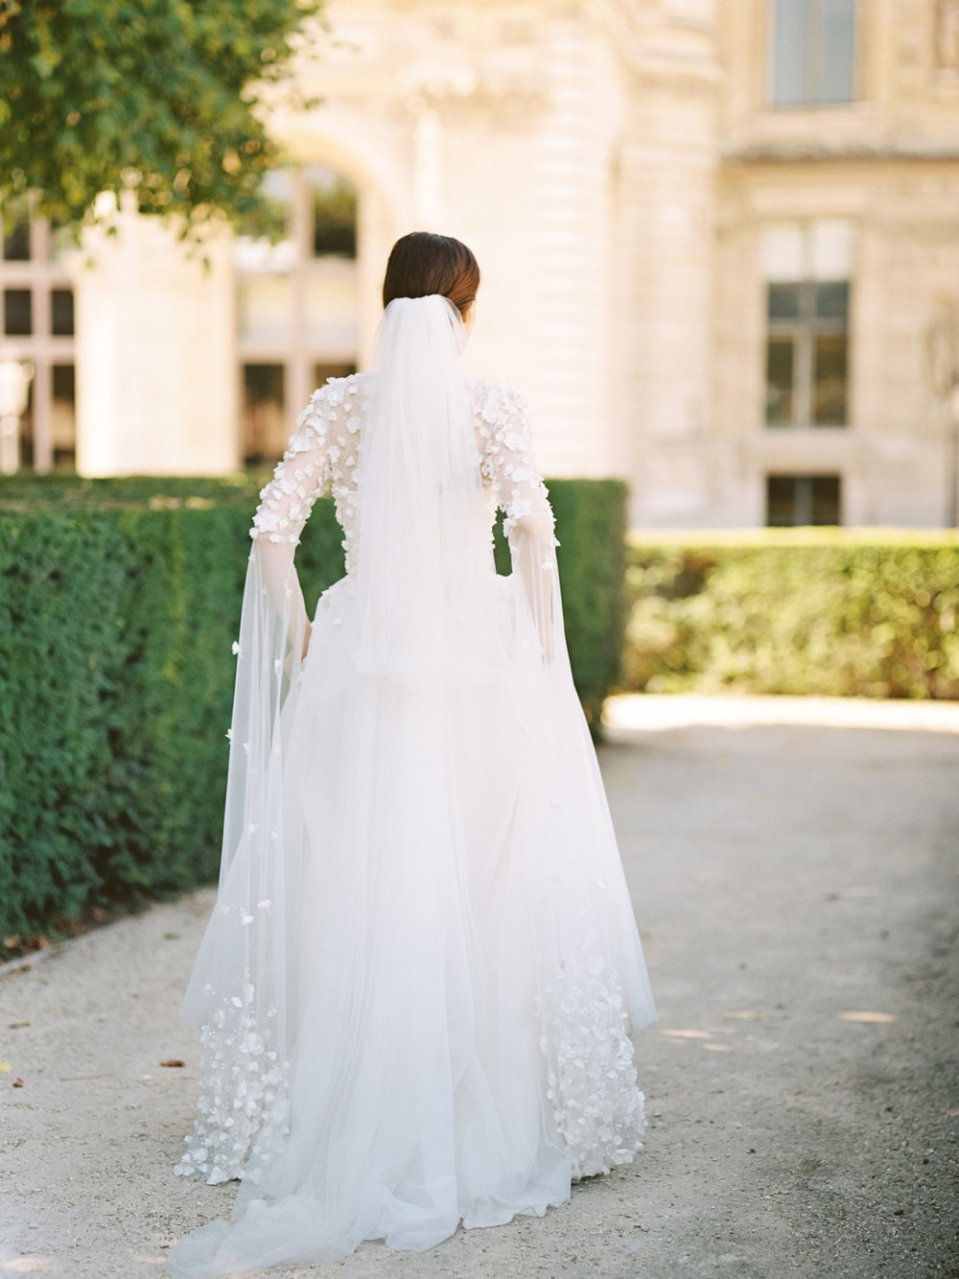 Destination Fine Art Wedding Editorial Photography in Paris with Max Chaoul -60.jpg